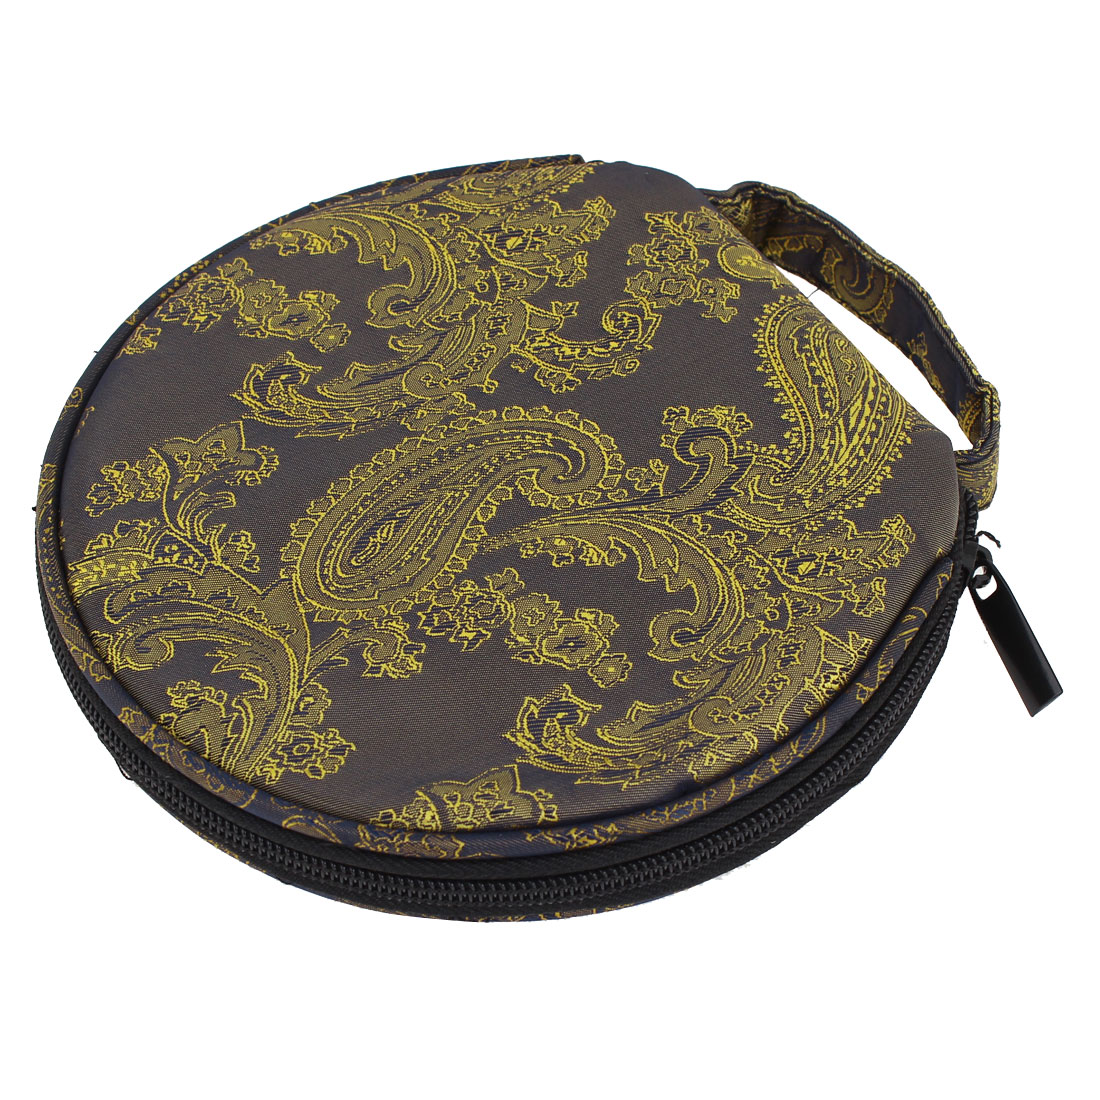 Embroidery Printed 20 DVD CD Discs Holder Bag Zippered Round Case Gold Tone